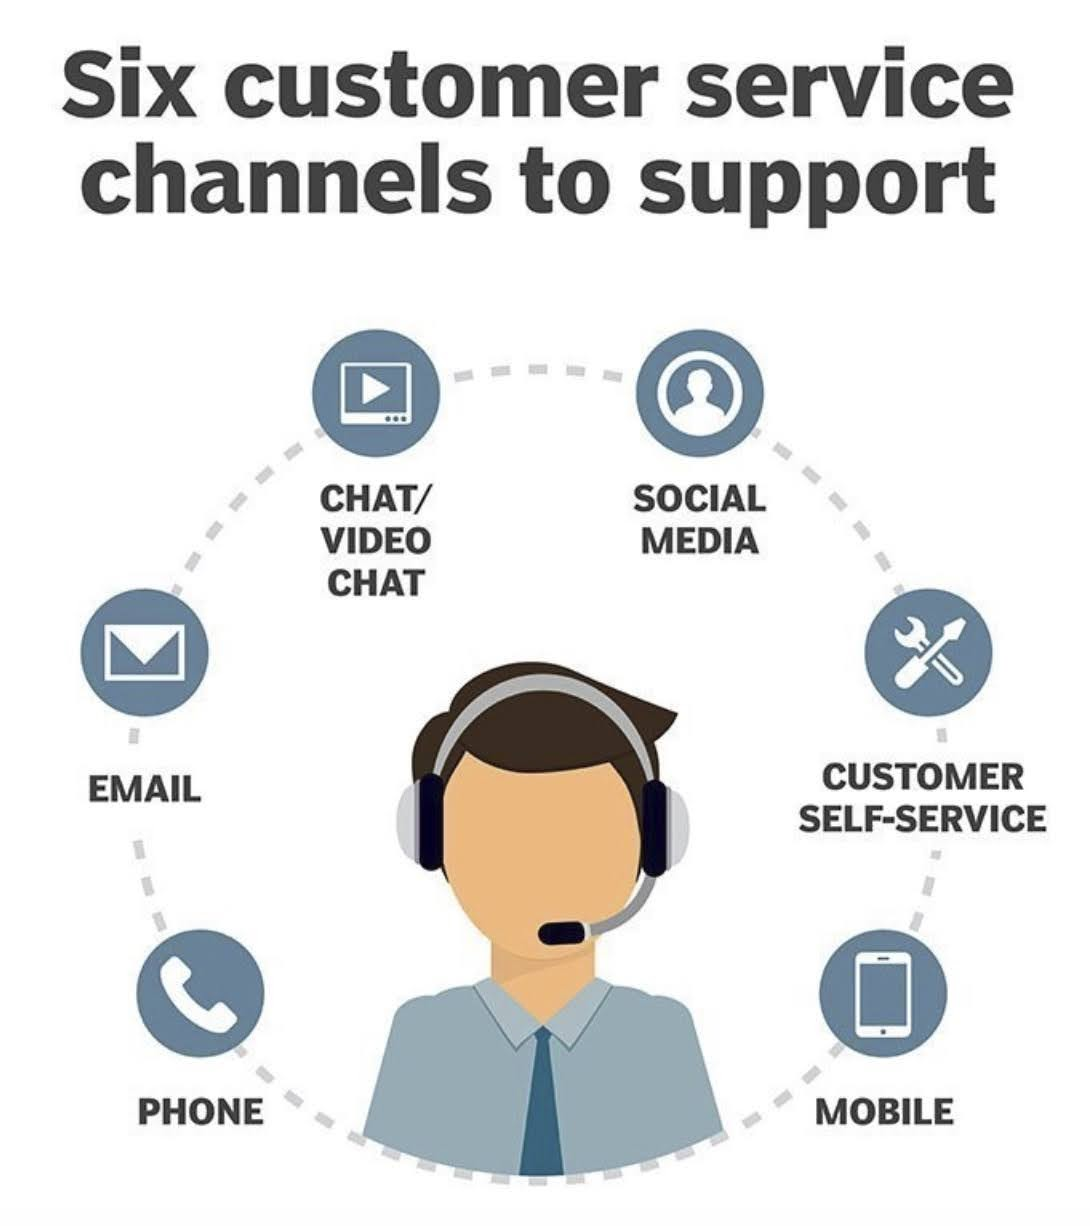 Six customer service channels to support: Phone, Email, Chat/Video Chat, Social Media, Customer Self-Service, Mobile